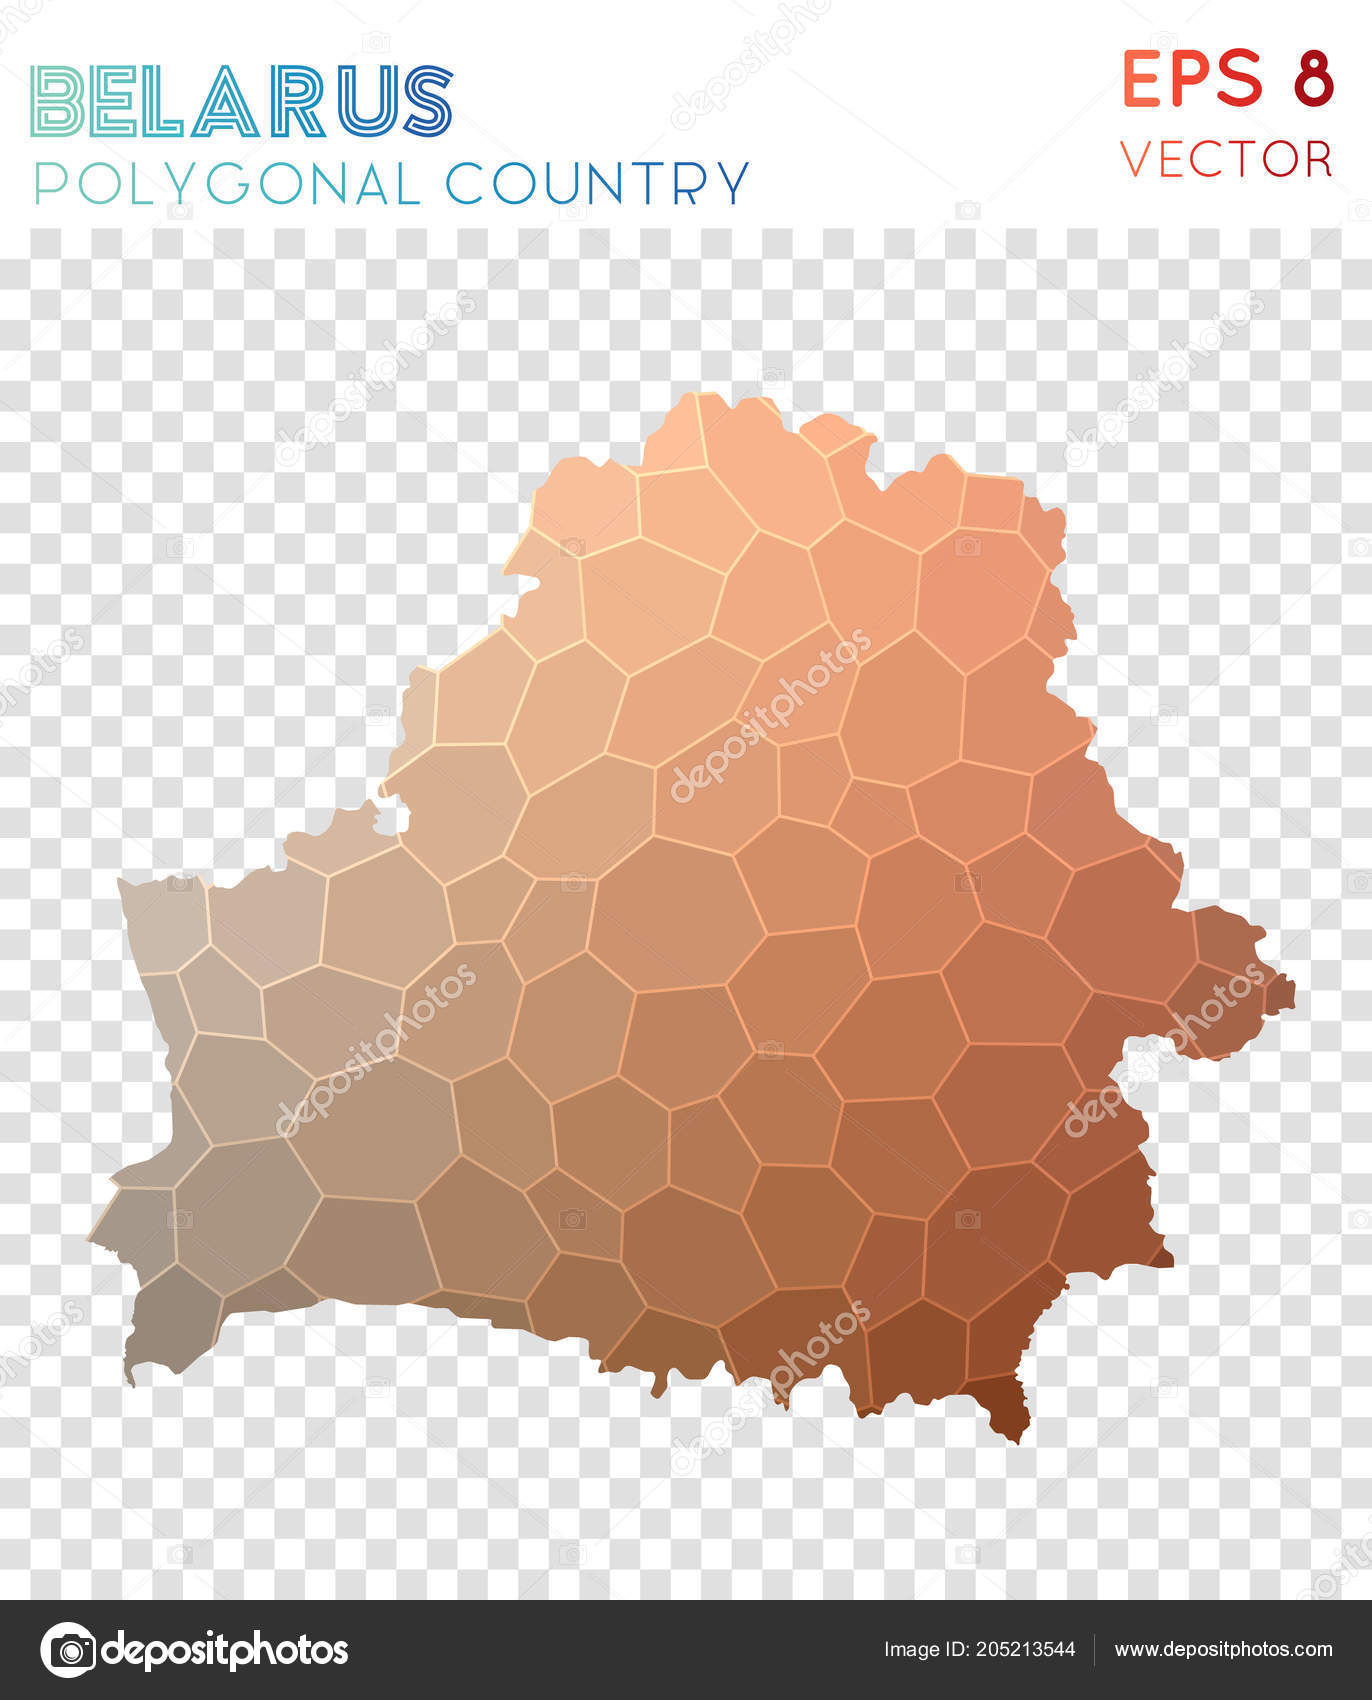 Hervorragend Belarus Polygonal Map Mosaic Style Country Captivating Low Poly Style  Modern Design Belarus U2014 Vetores De